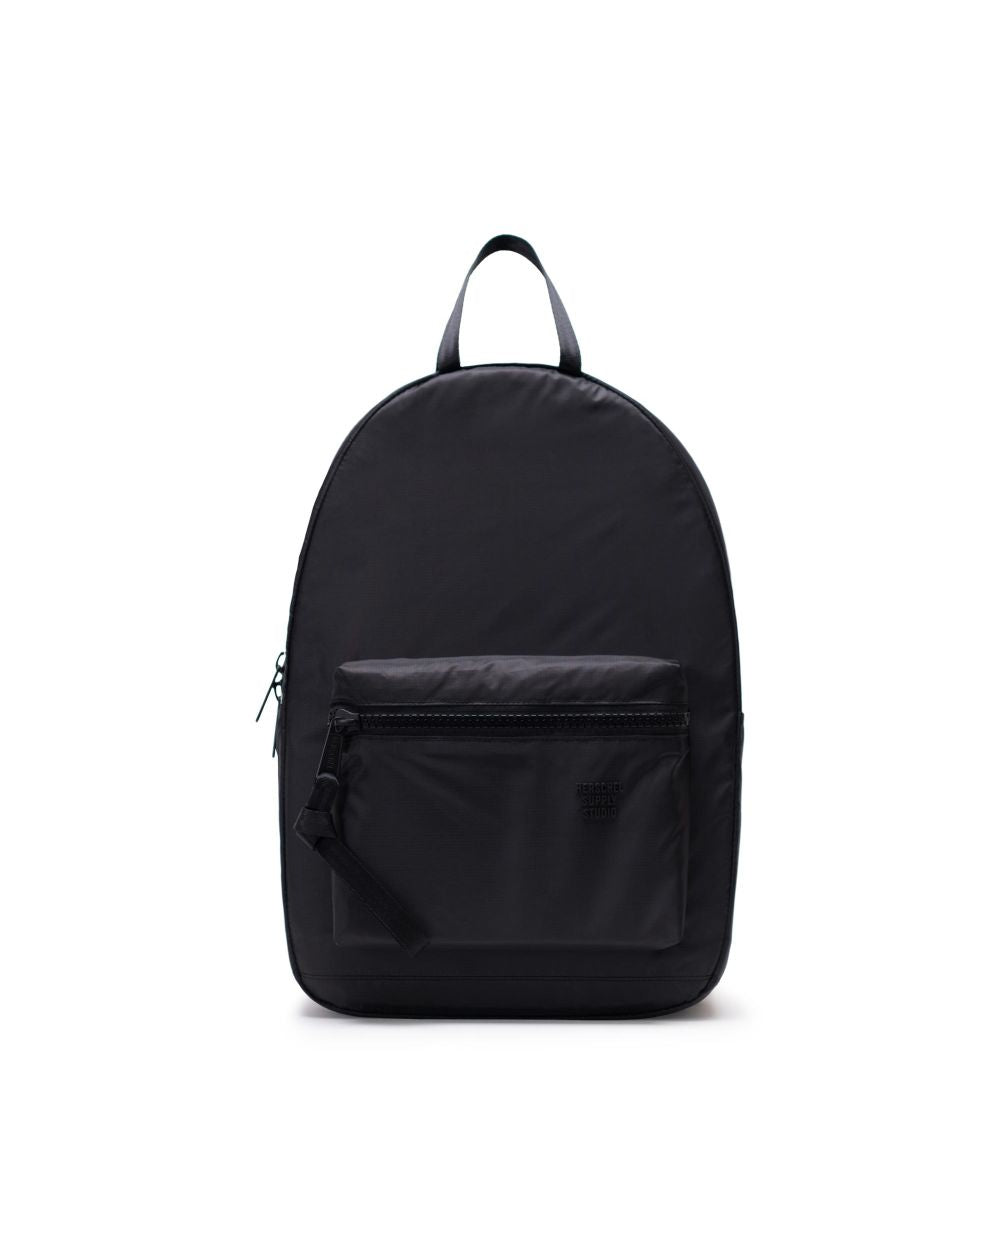 HS6 BACKPACK | STUDIO BLACK